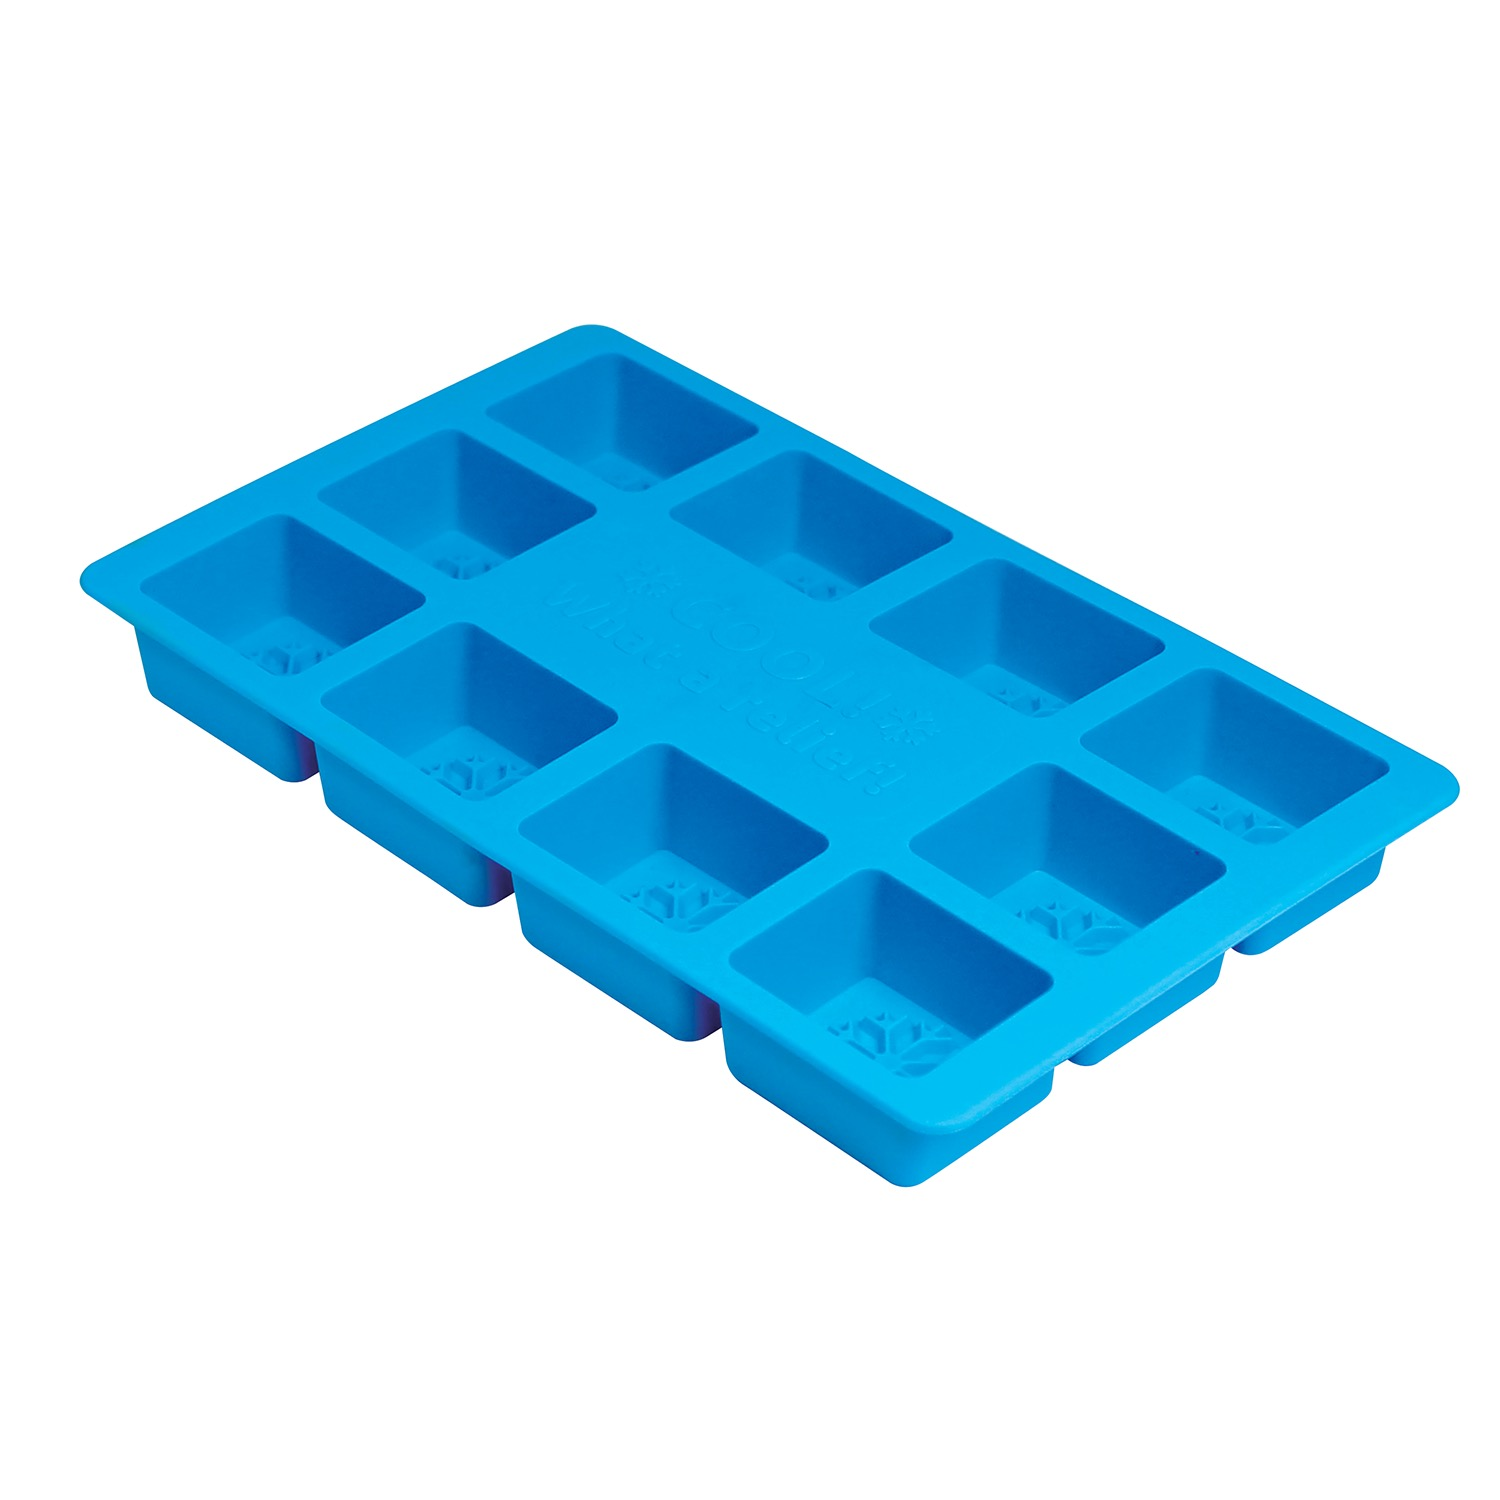 Thumbnail for Customisable Ice Cube Tray